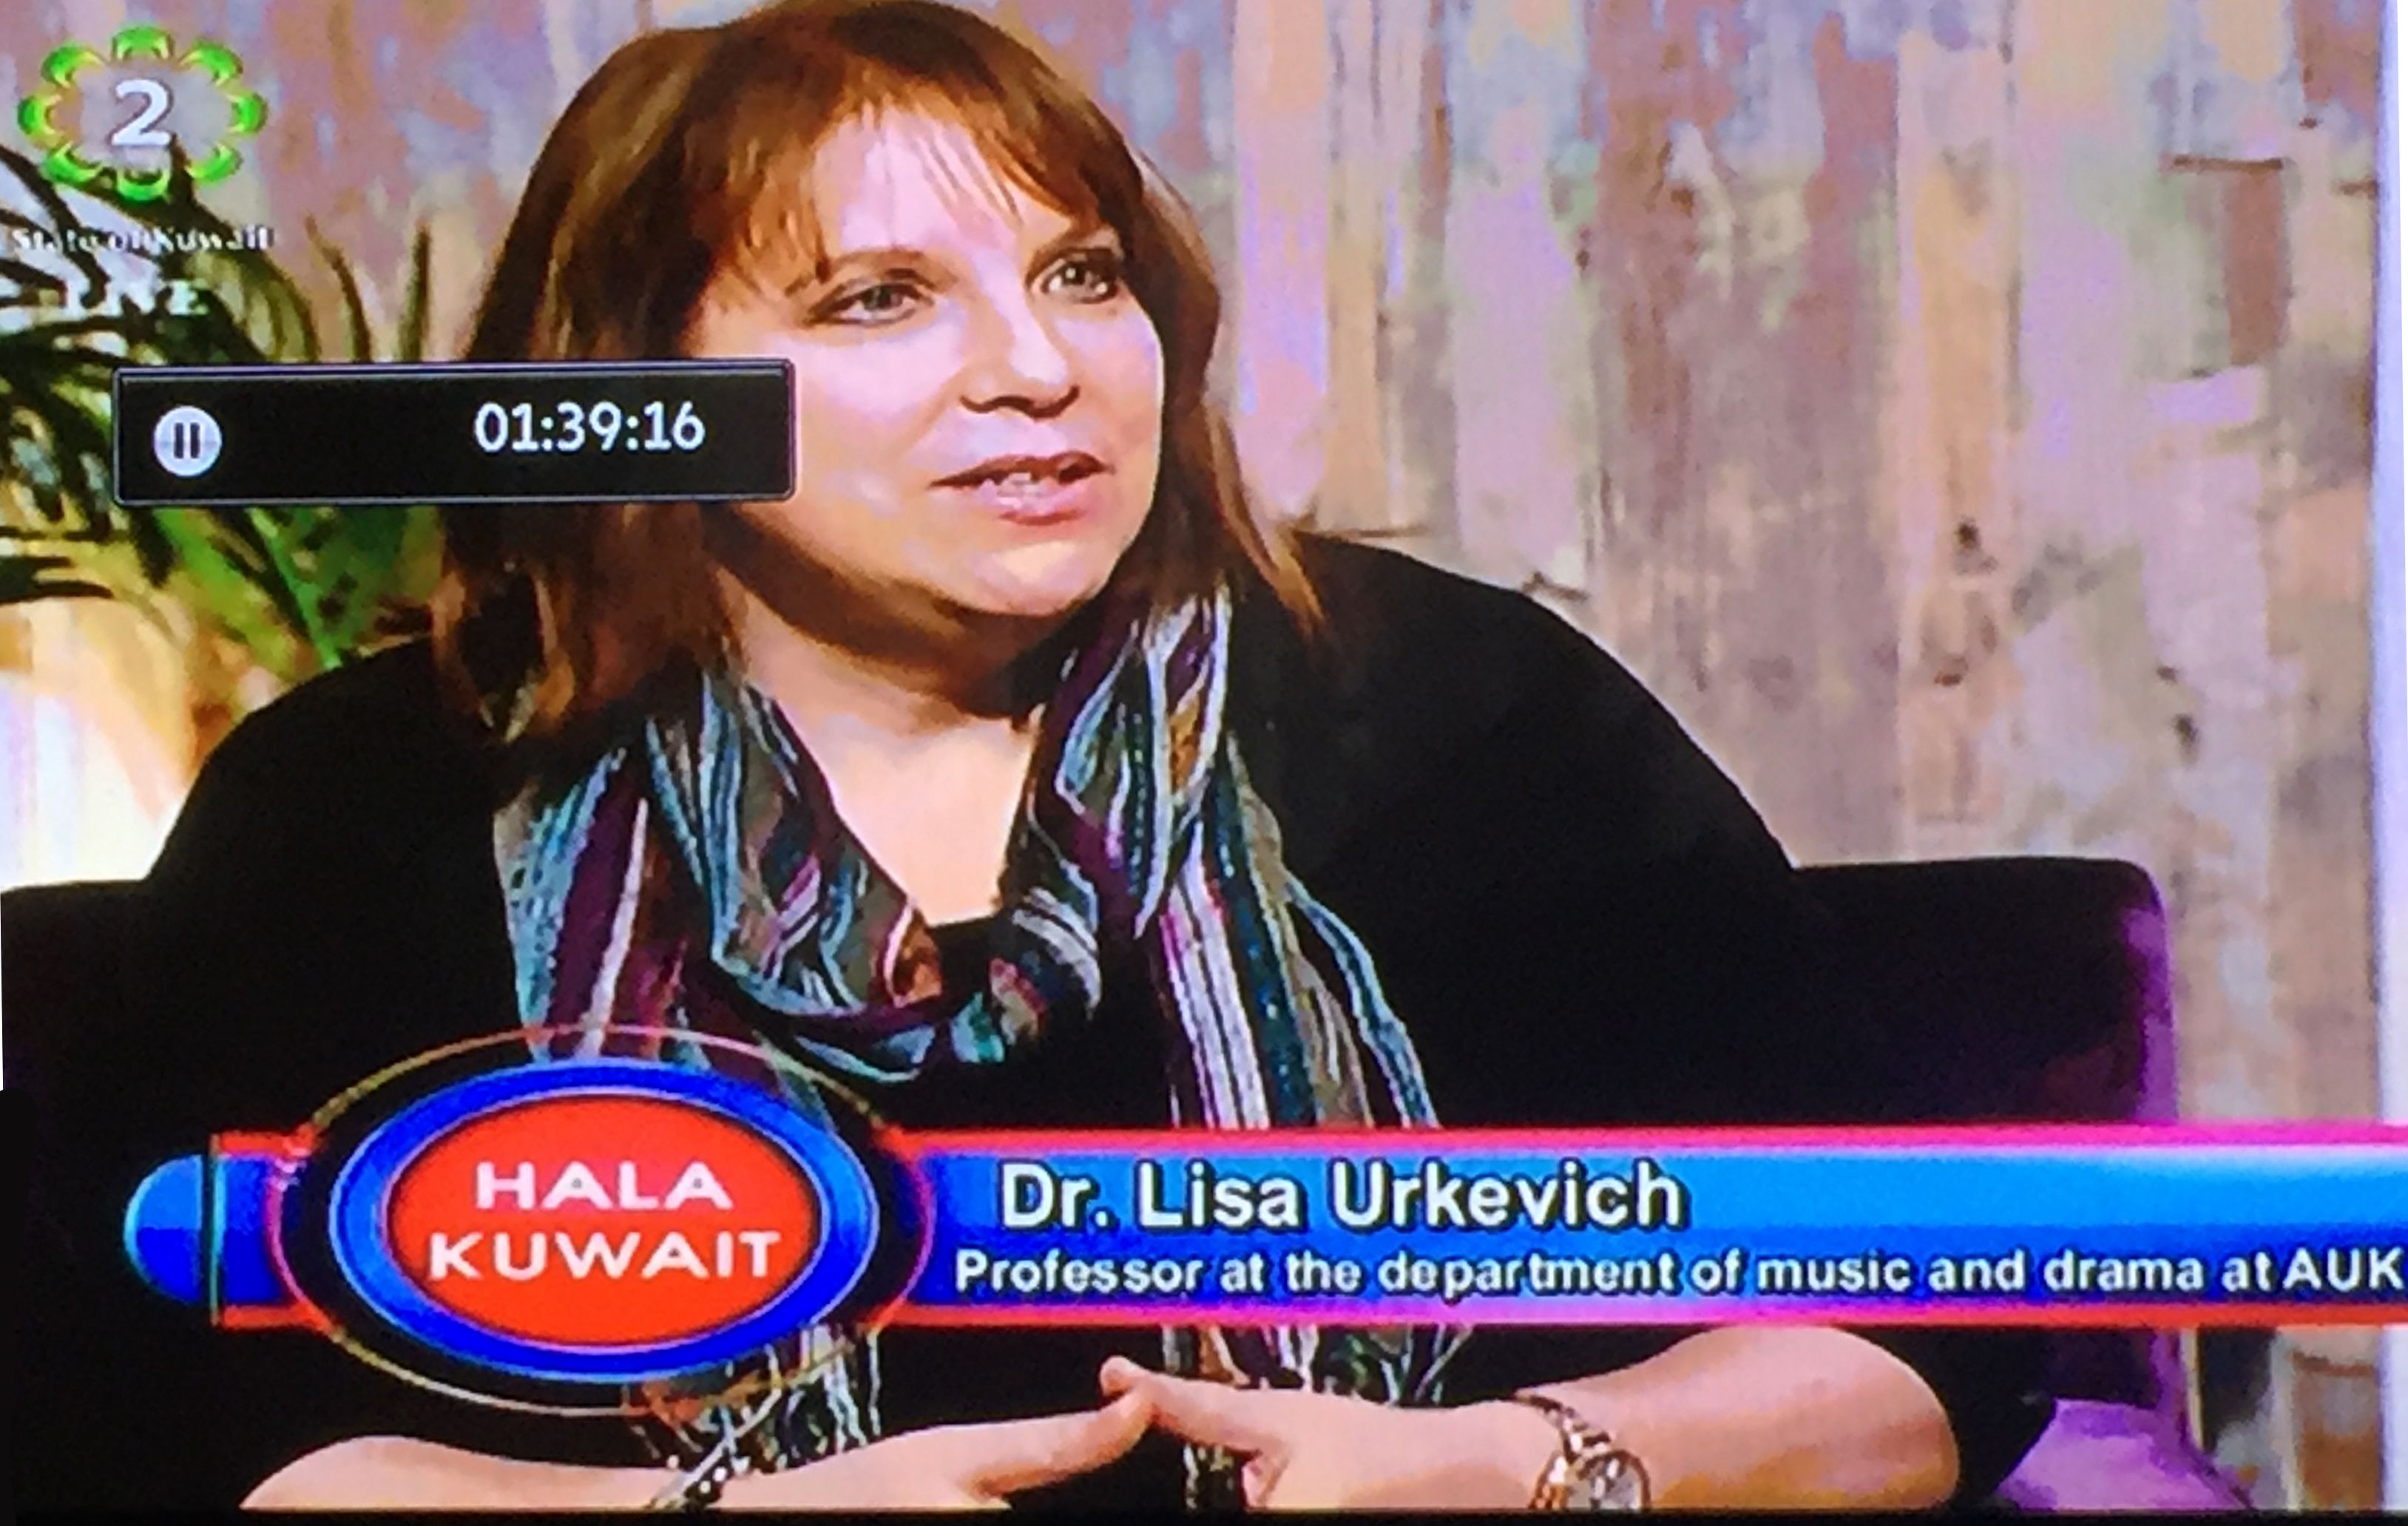 Hala Kuwait TV